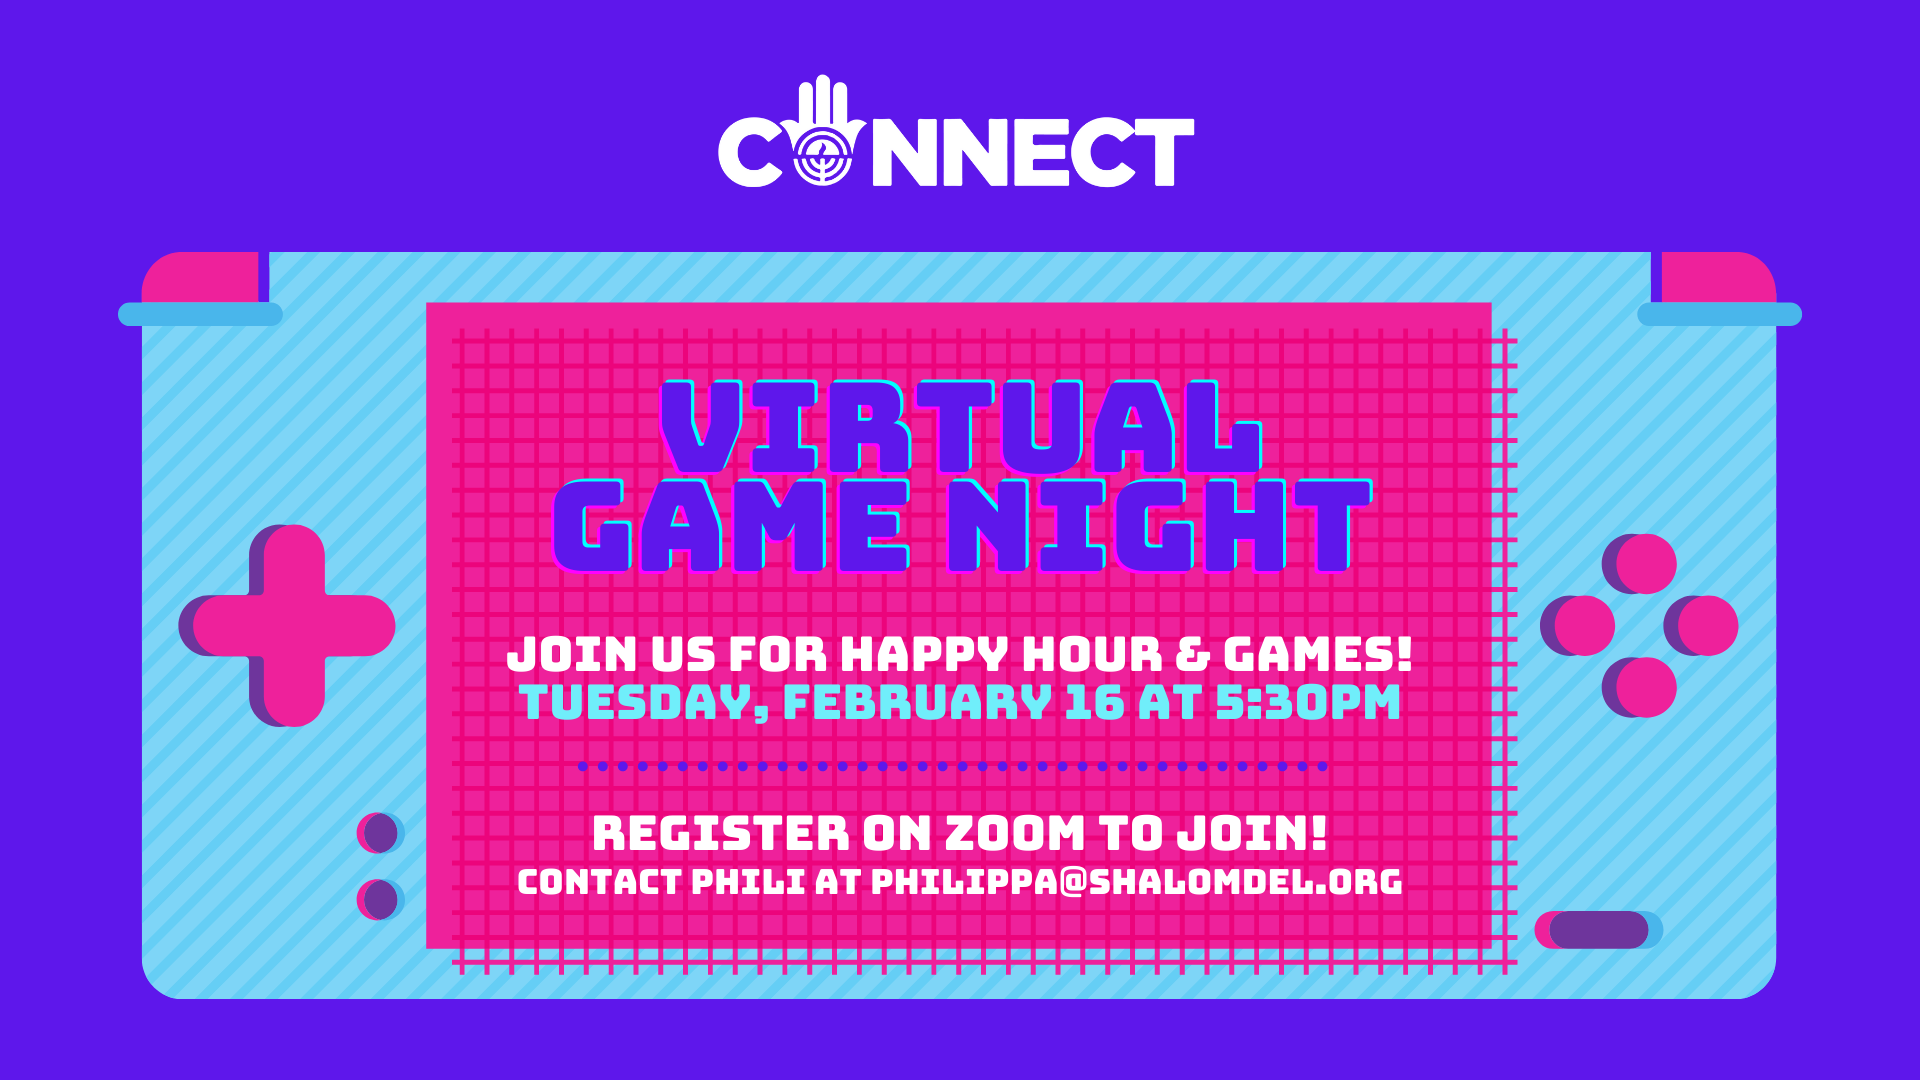 CONNECT Game night and happy hour